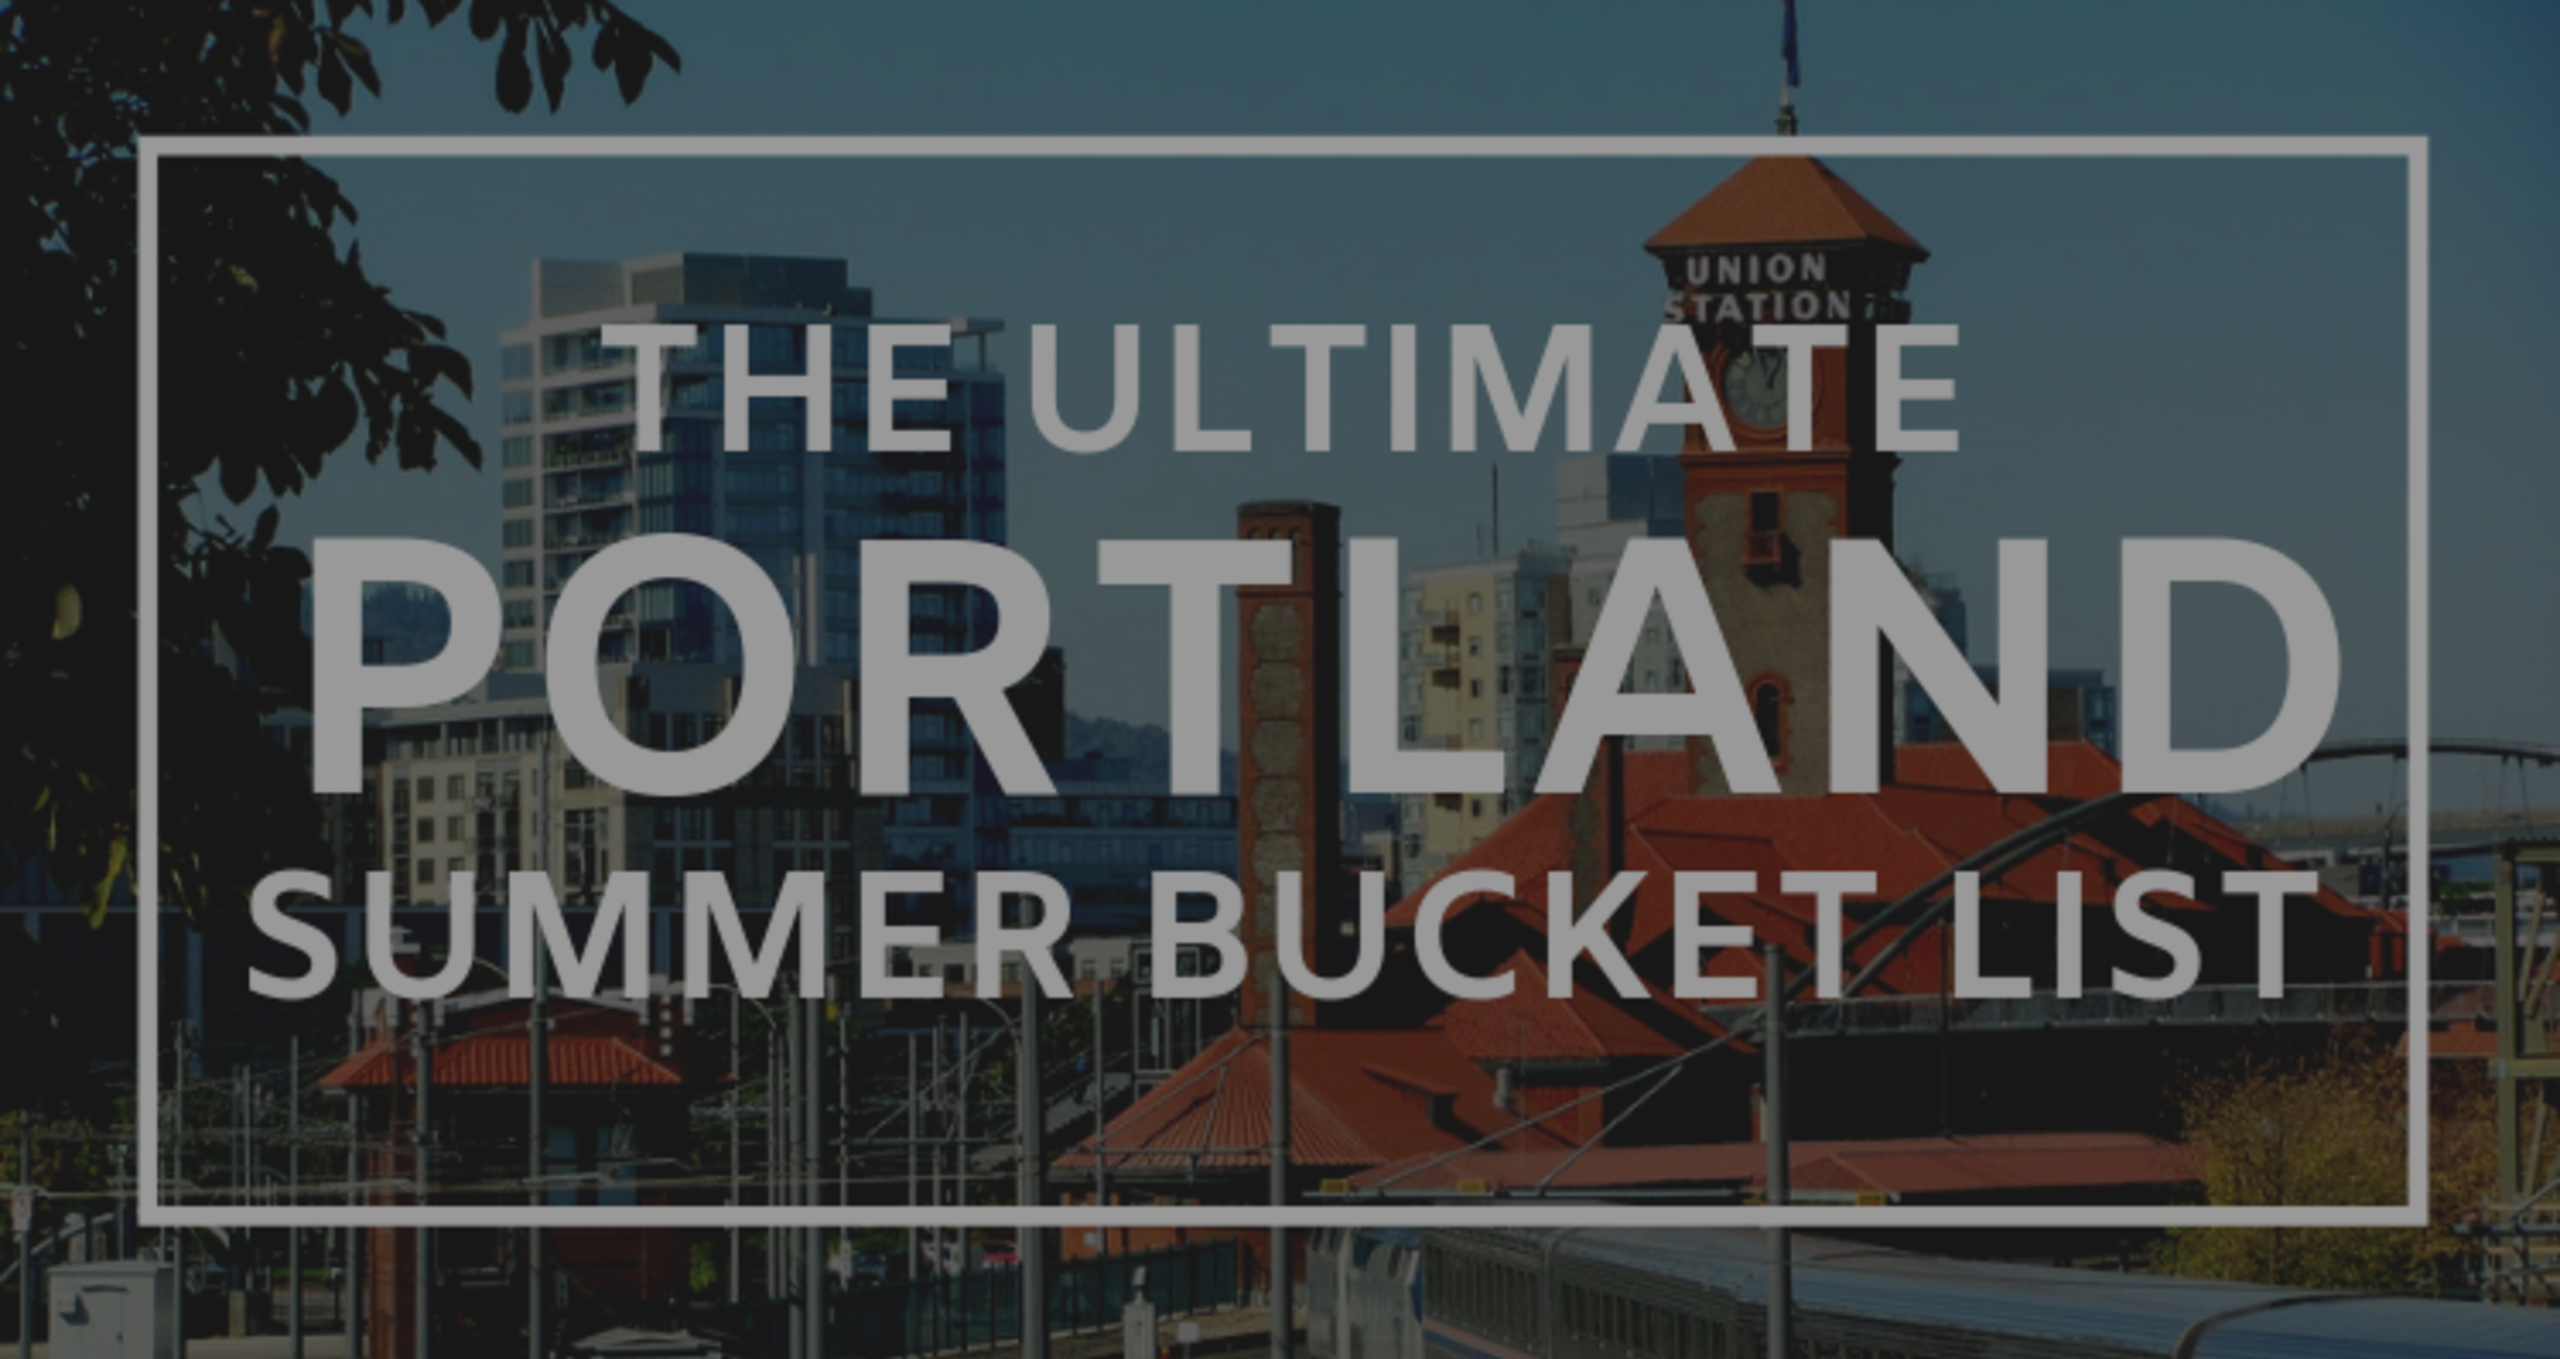 The Ultimate Portland Summer Bucket List